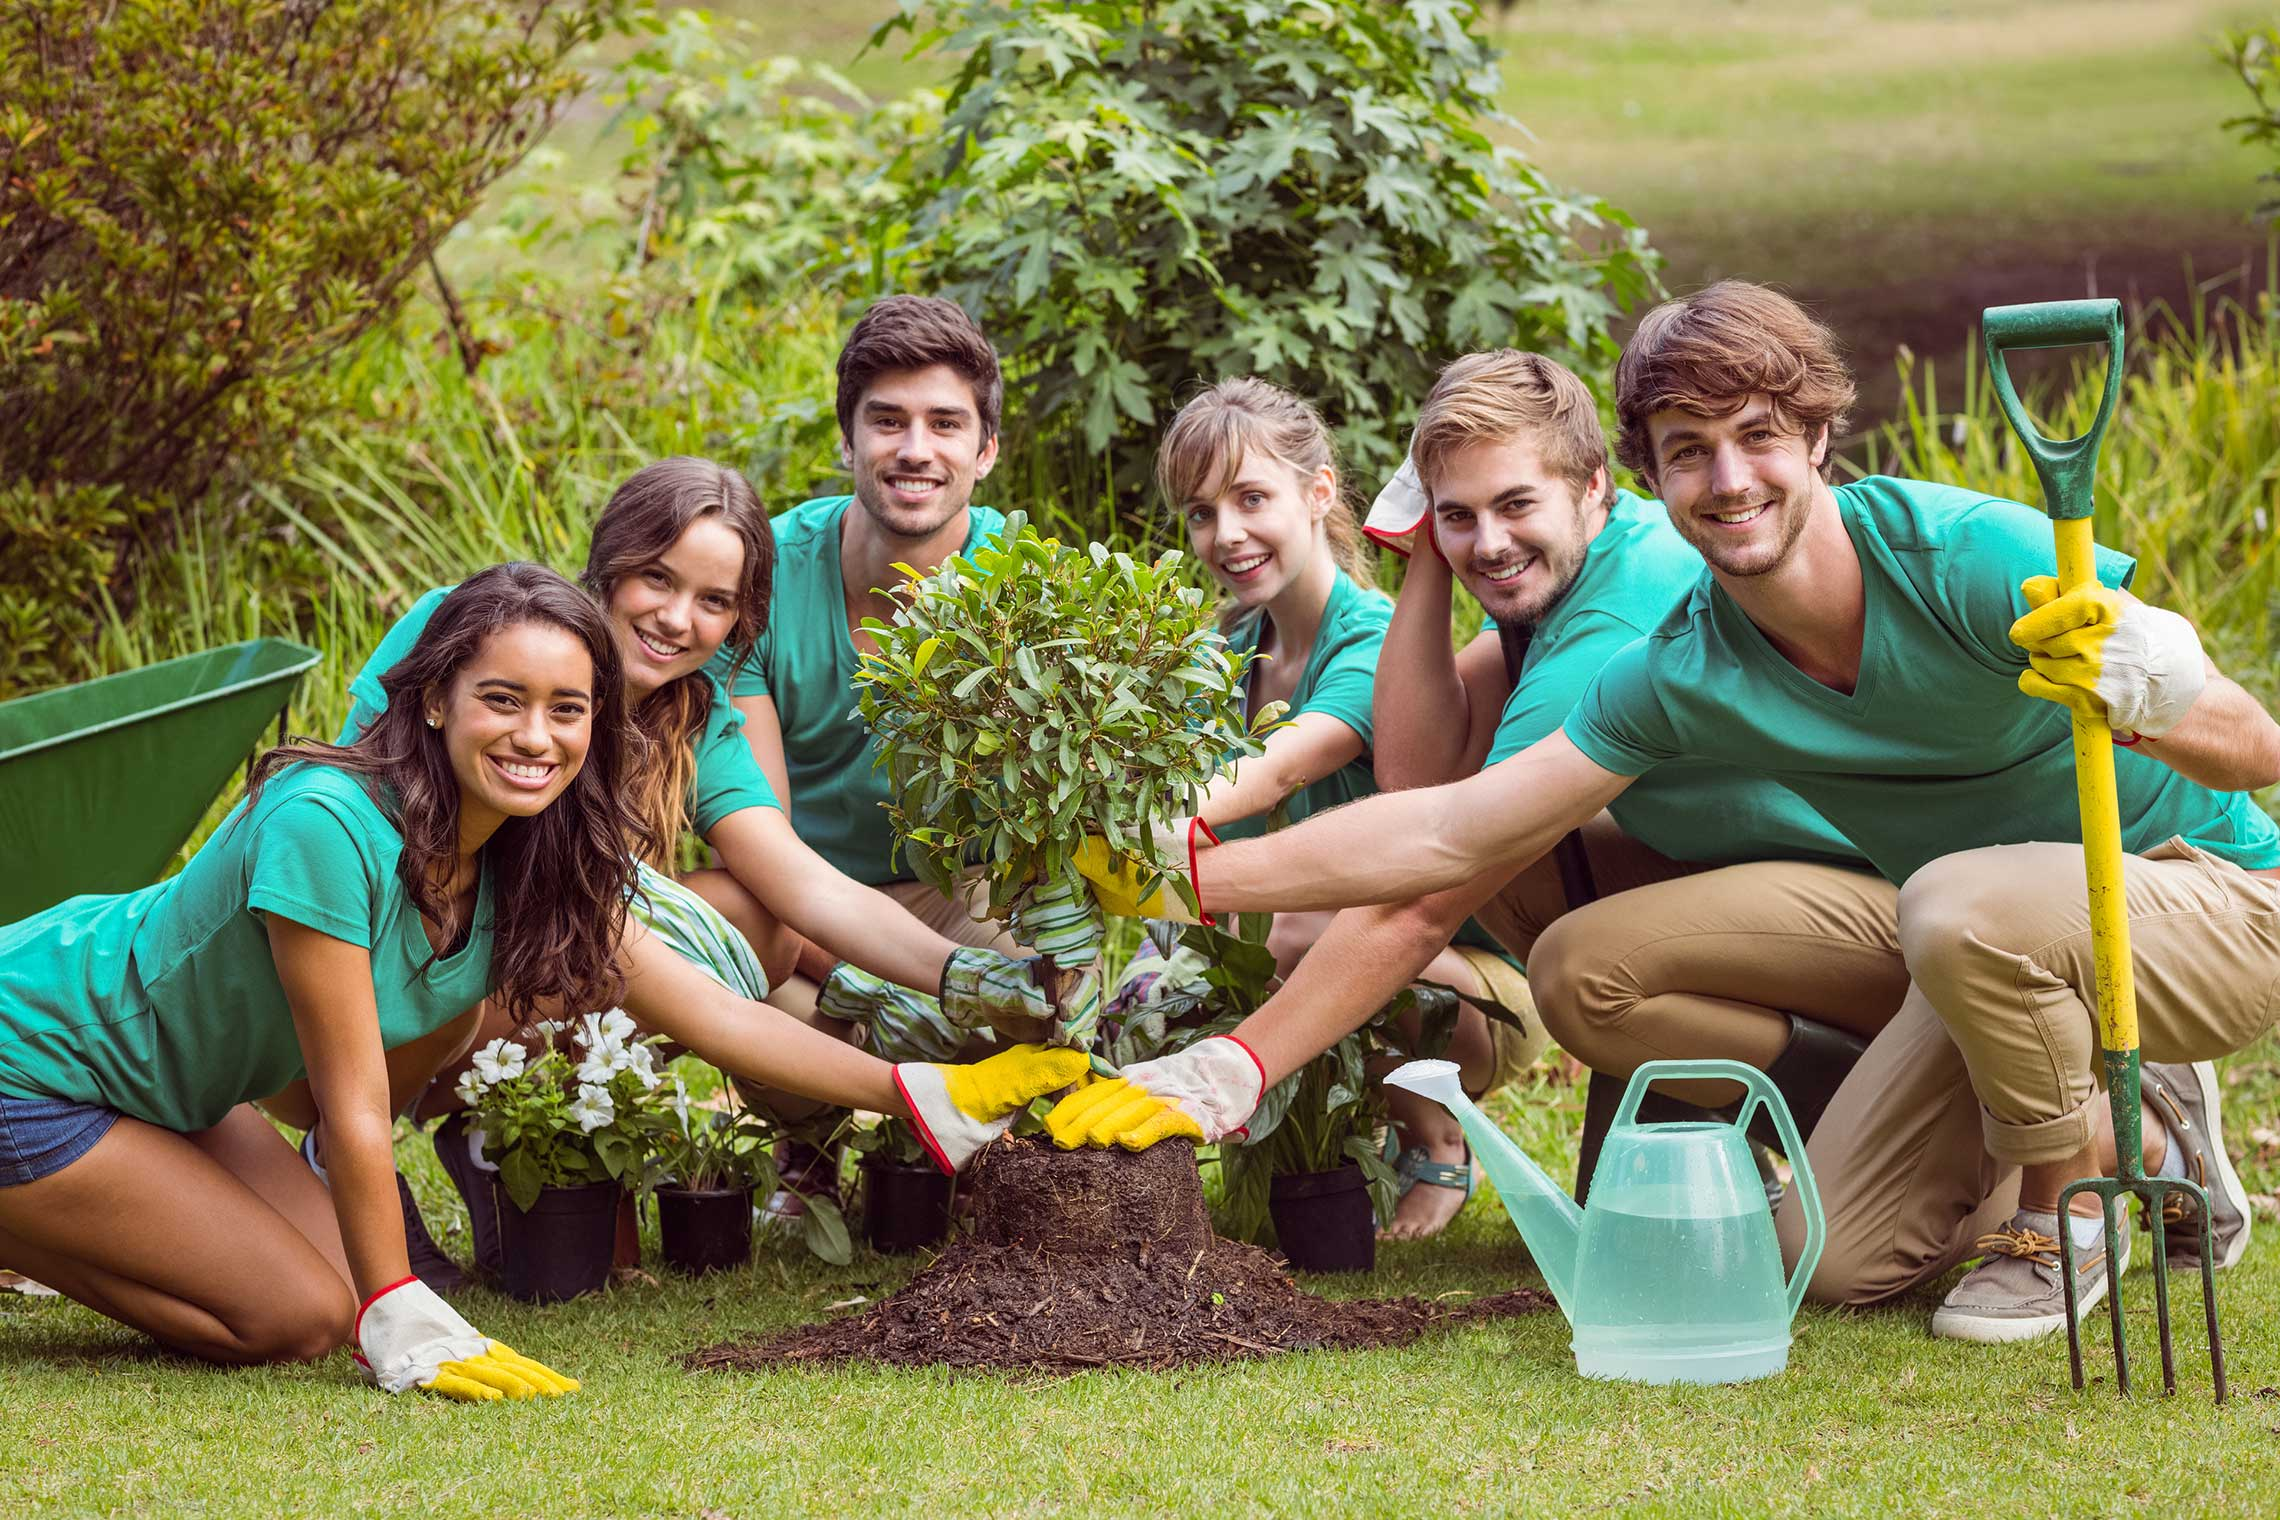 micro volunteering opportunities making a difference in a matter